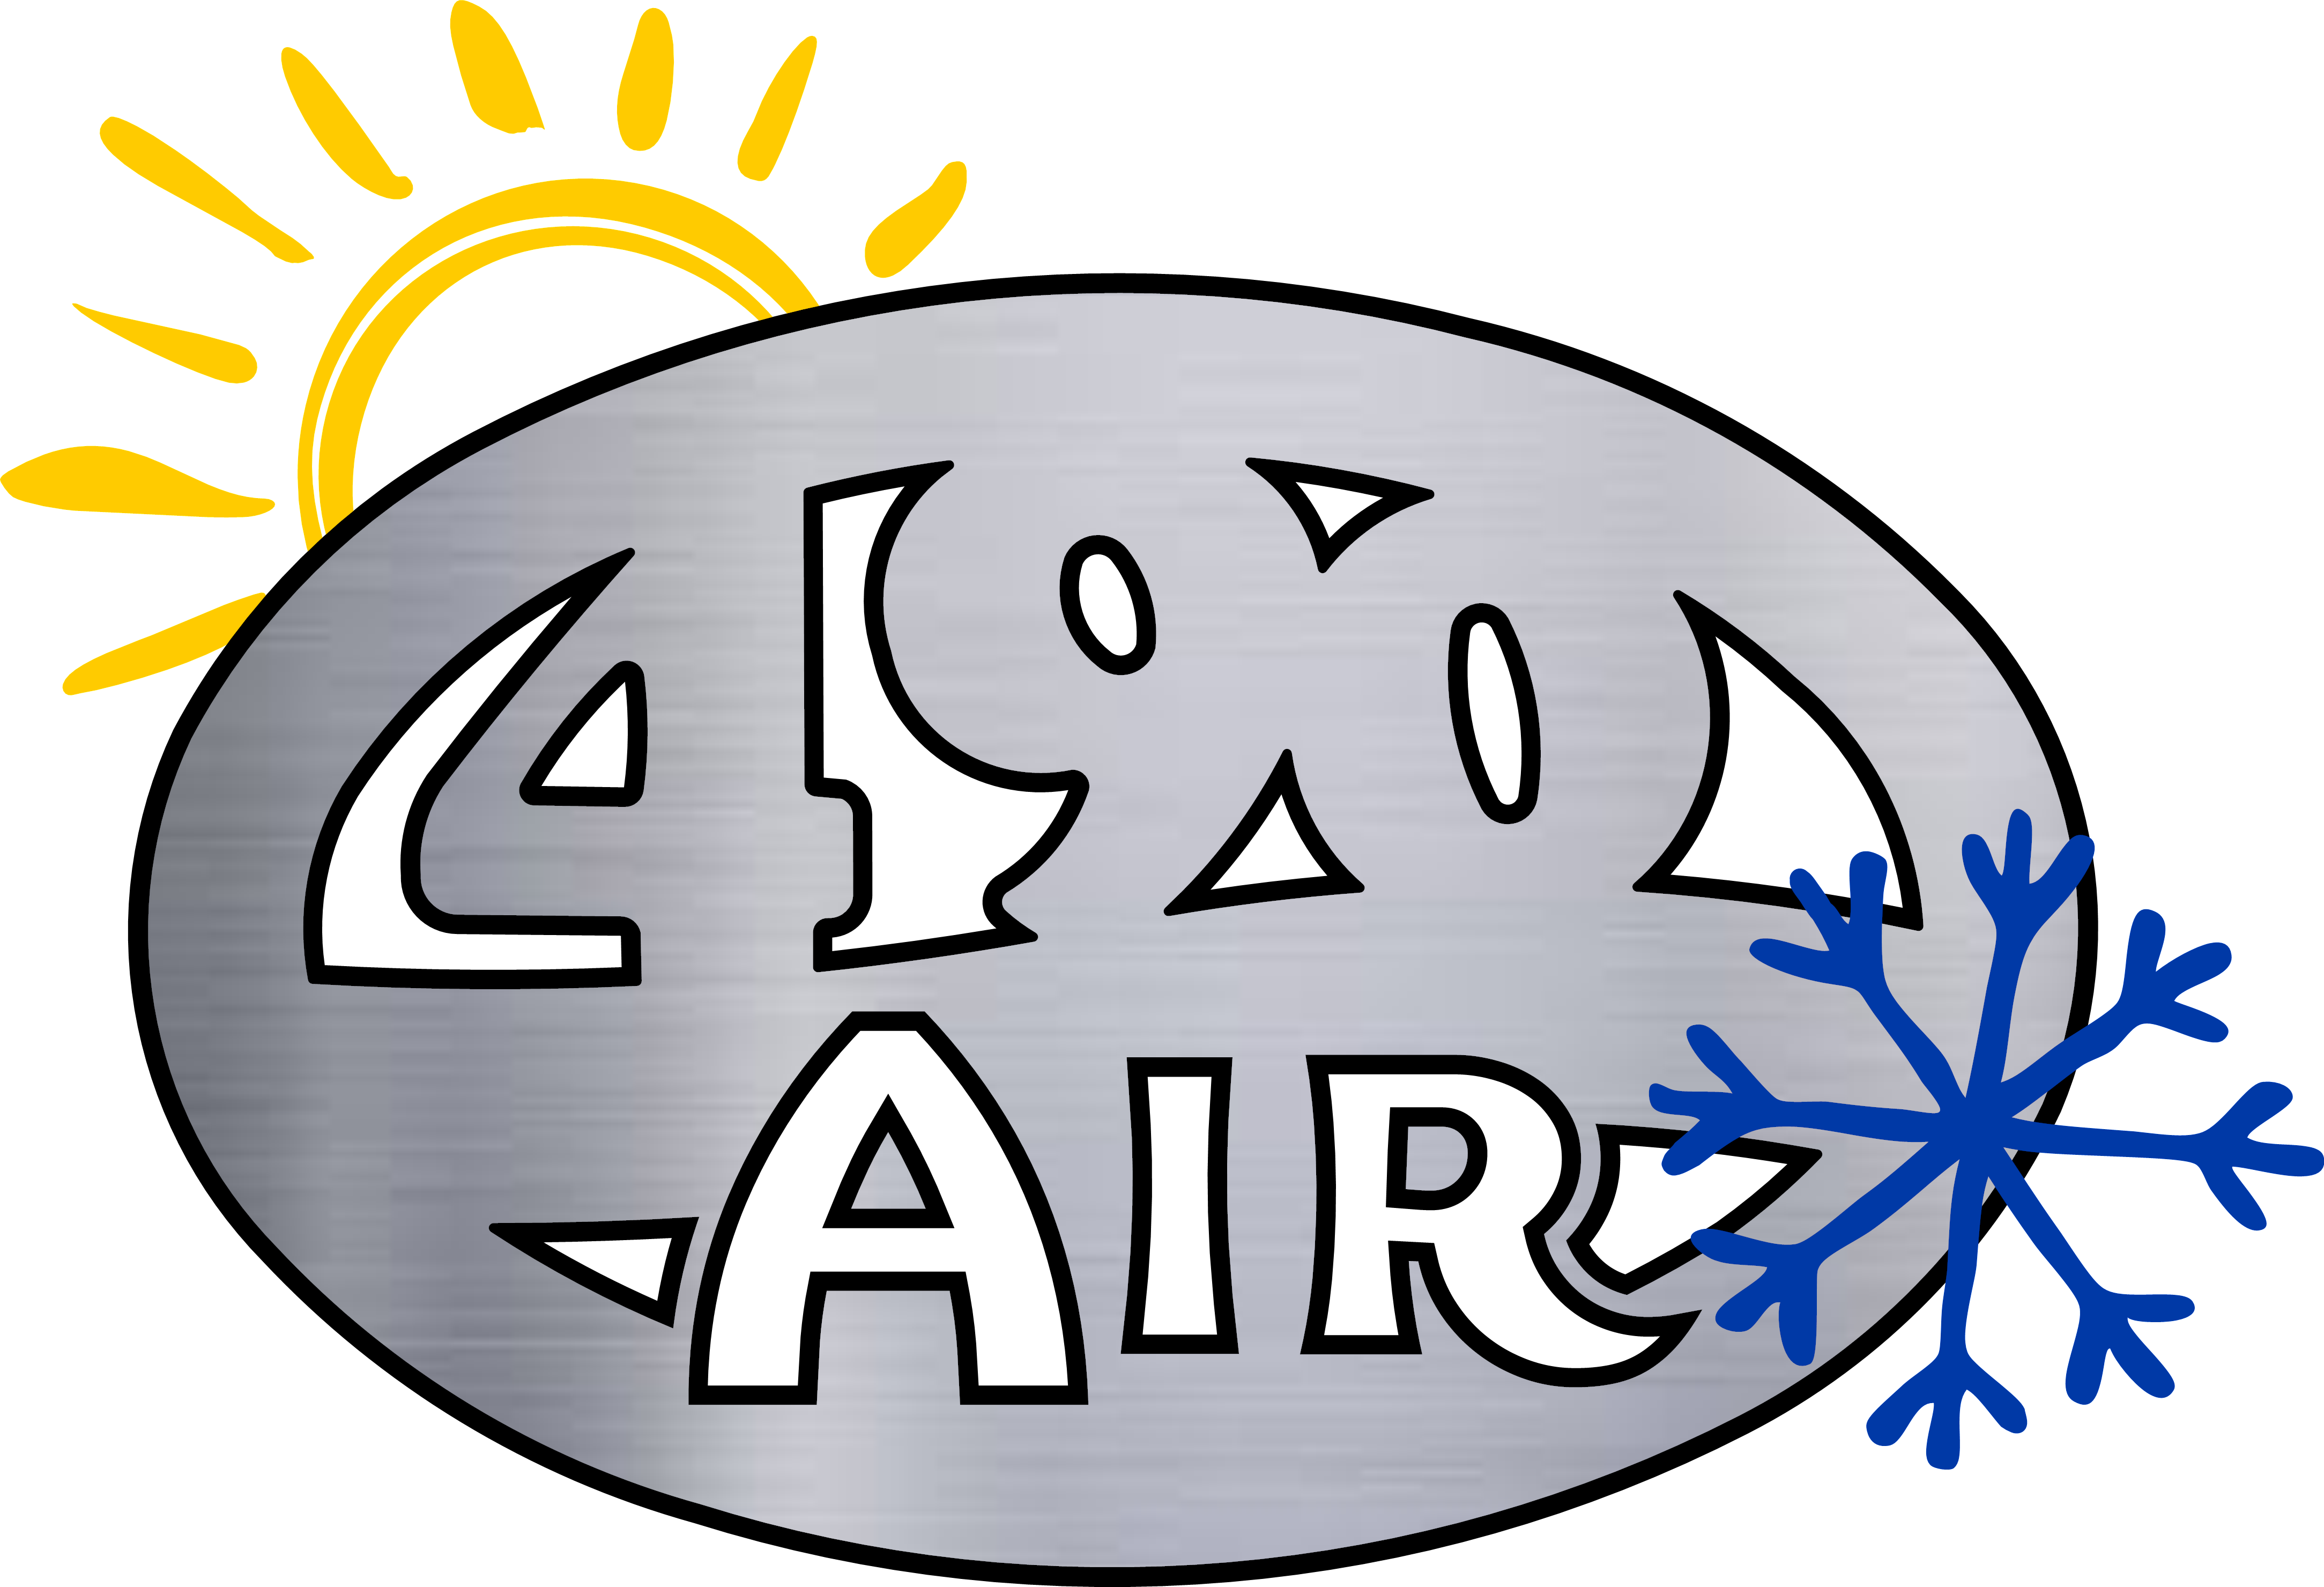 Heating and Air Conditioning Repair in Tahlequah - 490 Air Announces HVAC Solutions for Residents and Businesses